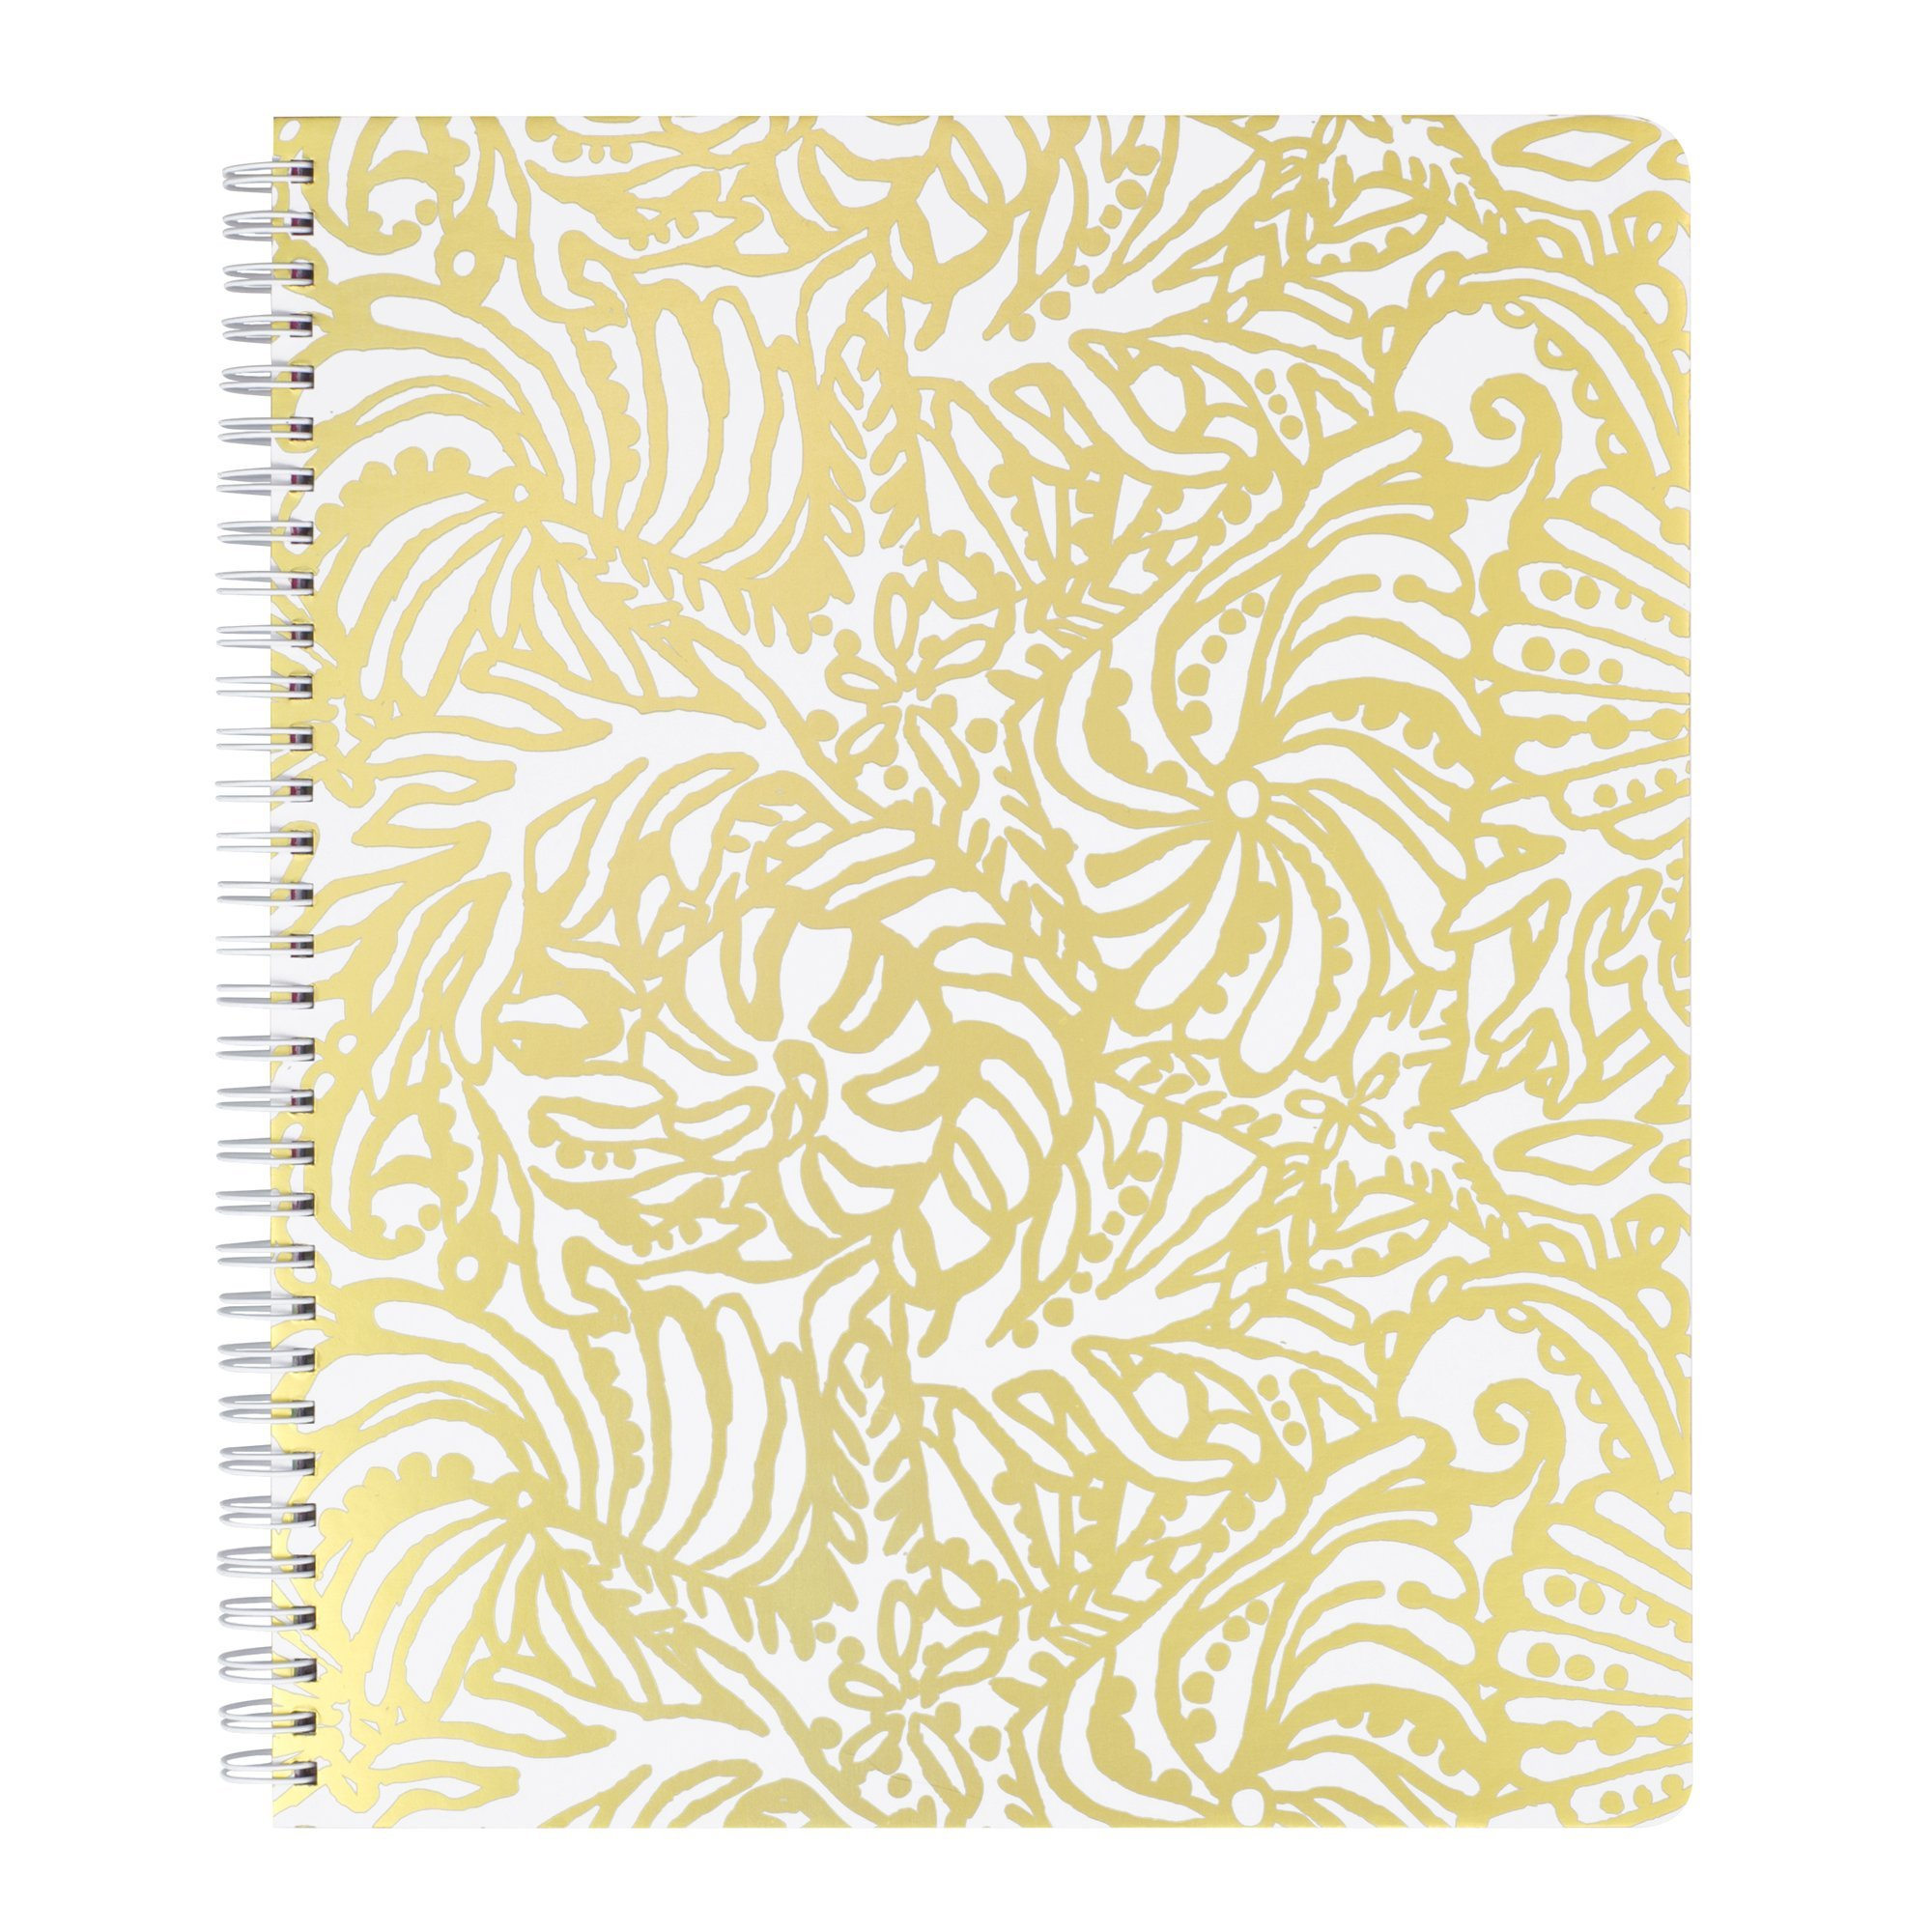 Lilly Pulitzer Women's Large Notebook, Beach Haven, Gold